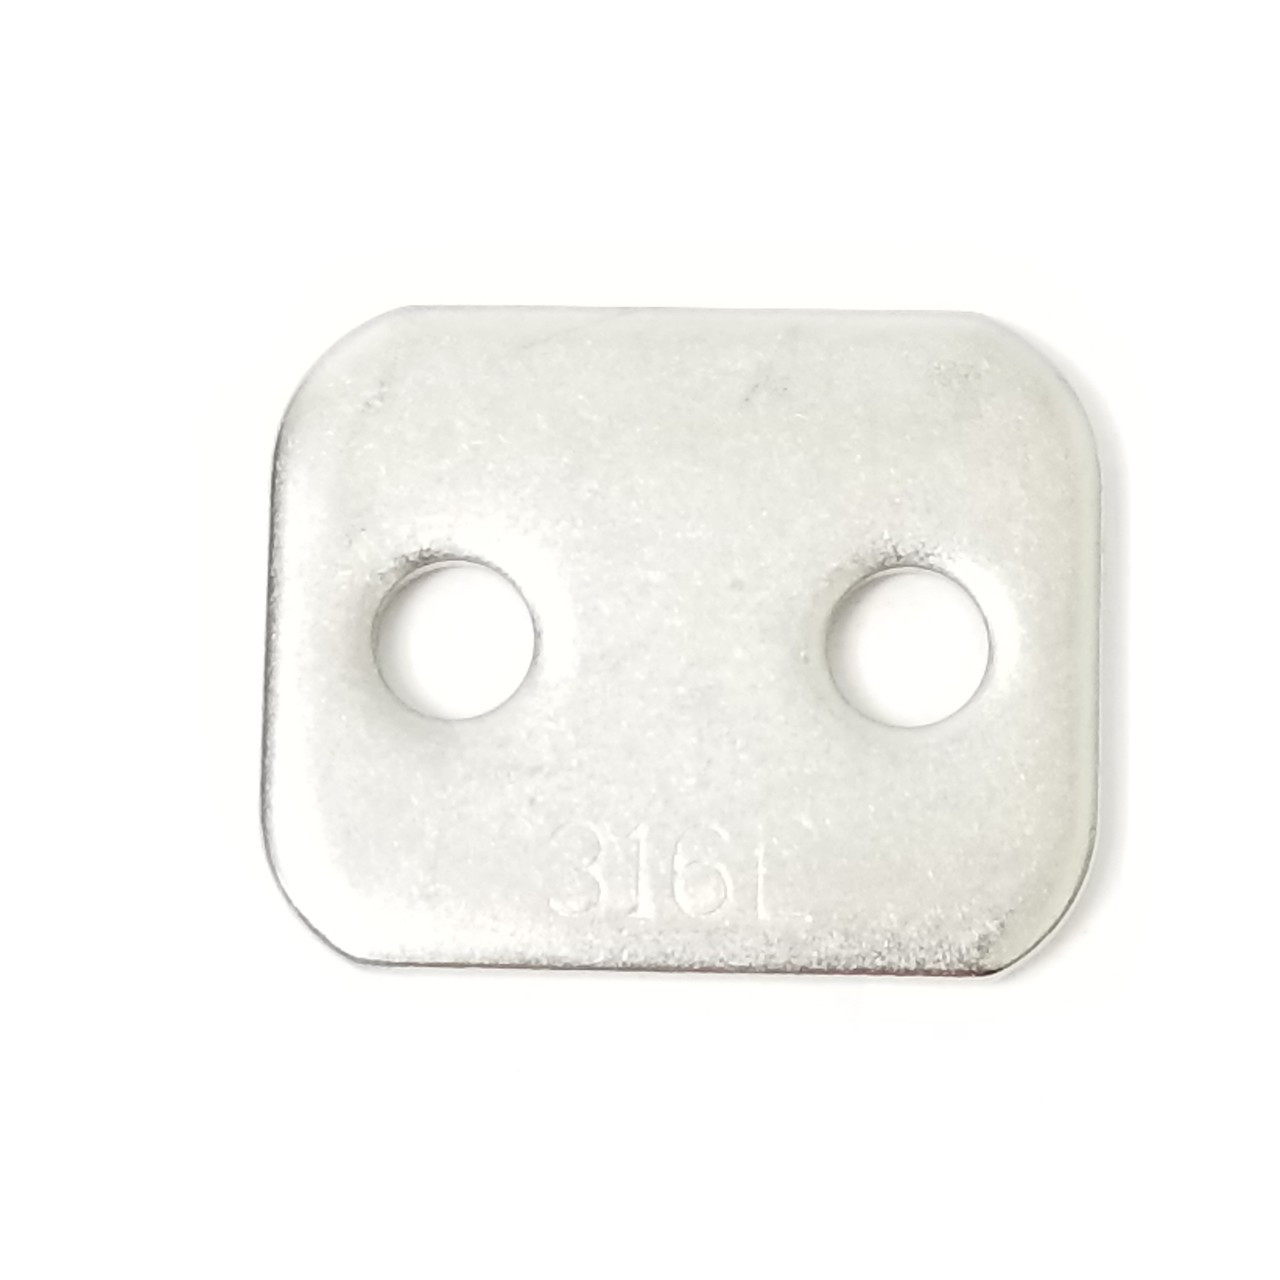 TP2316 Top plate